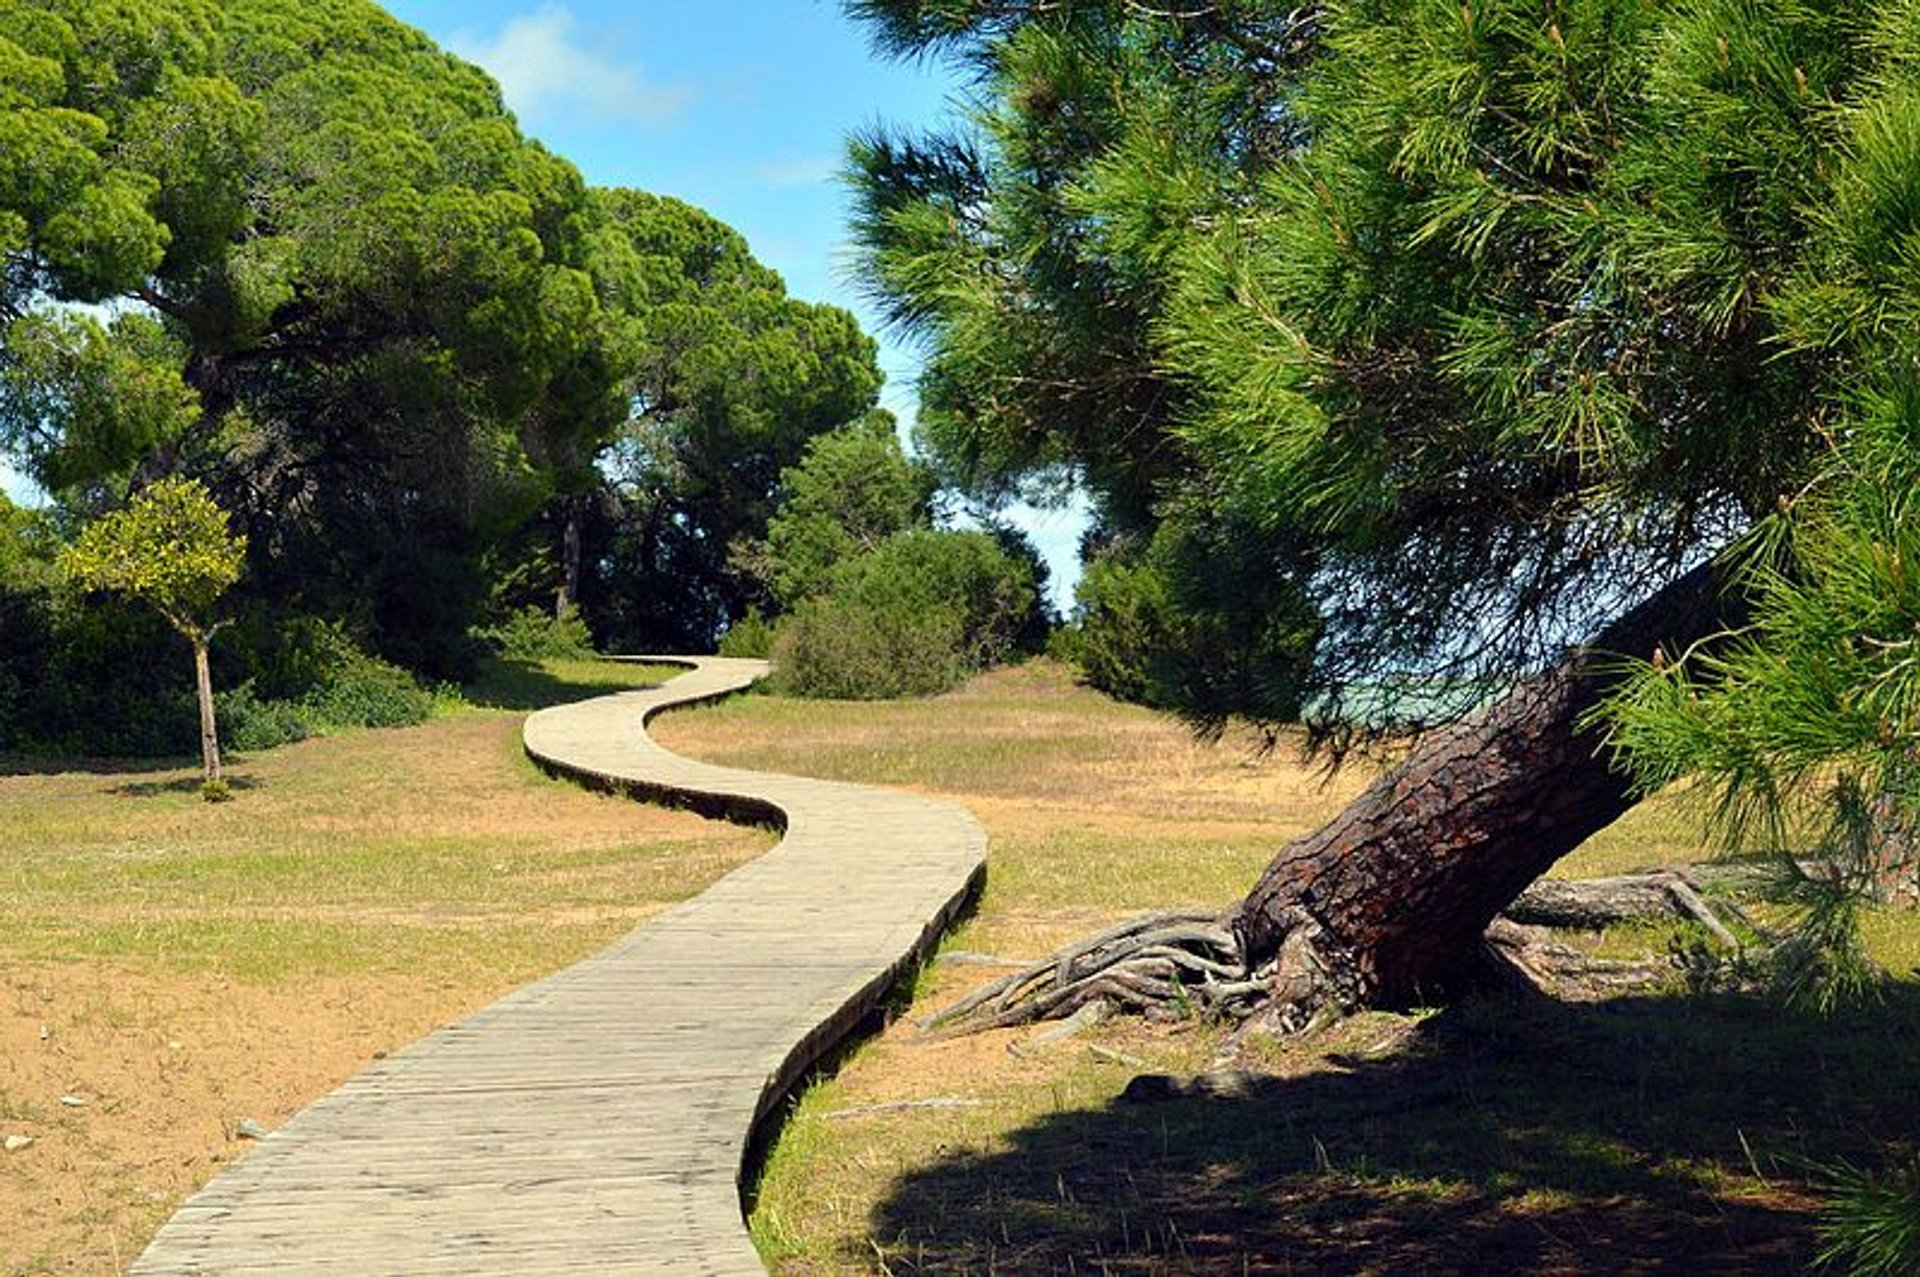 Doñana National Park in Seville 2020 - Best Time